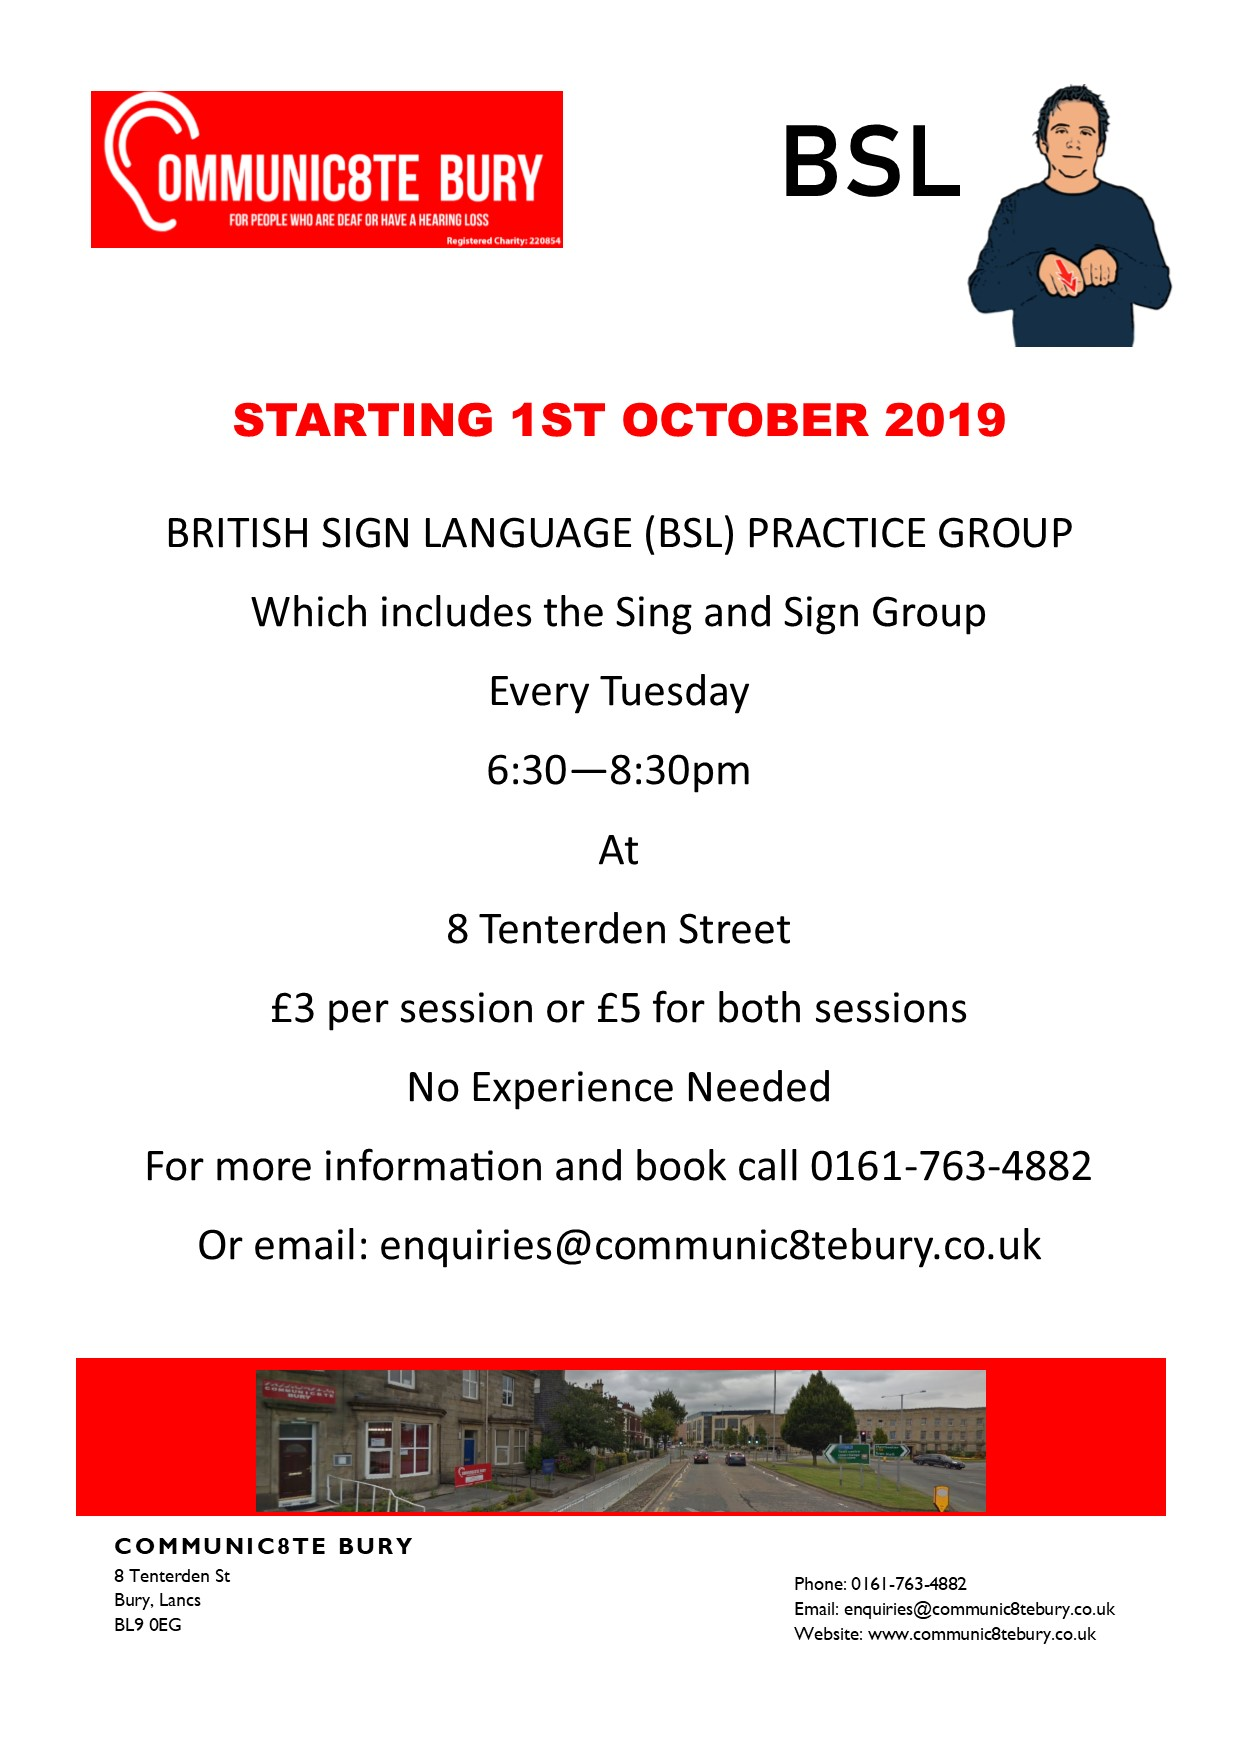 British Sign Language Practice Group